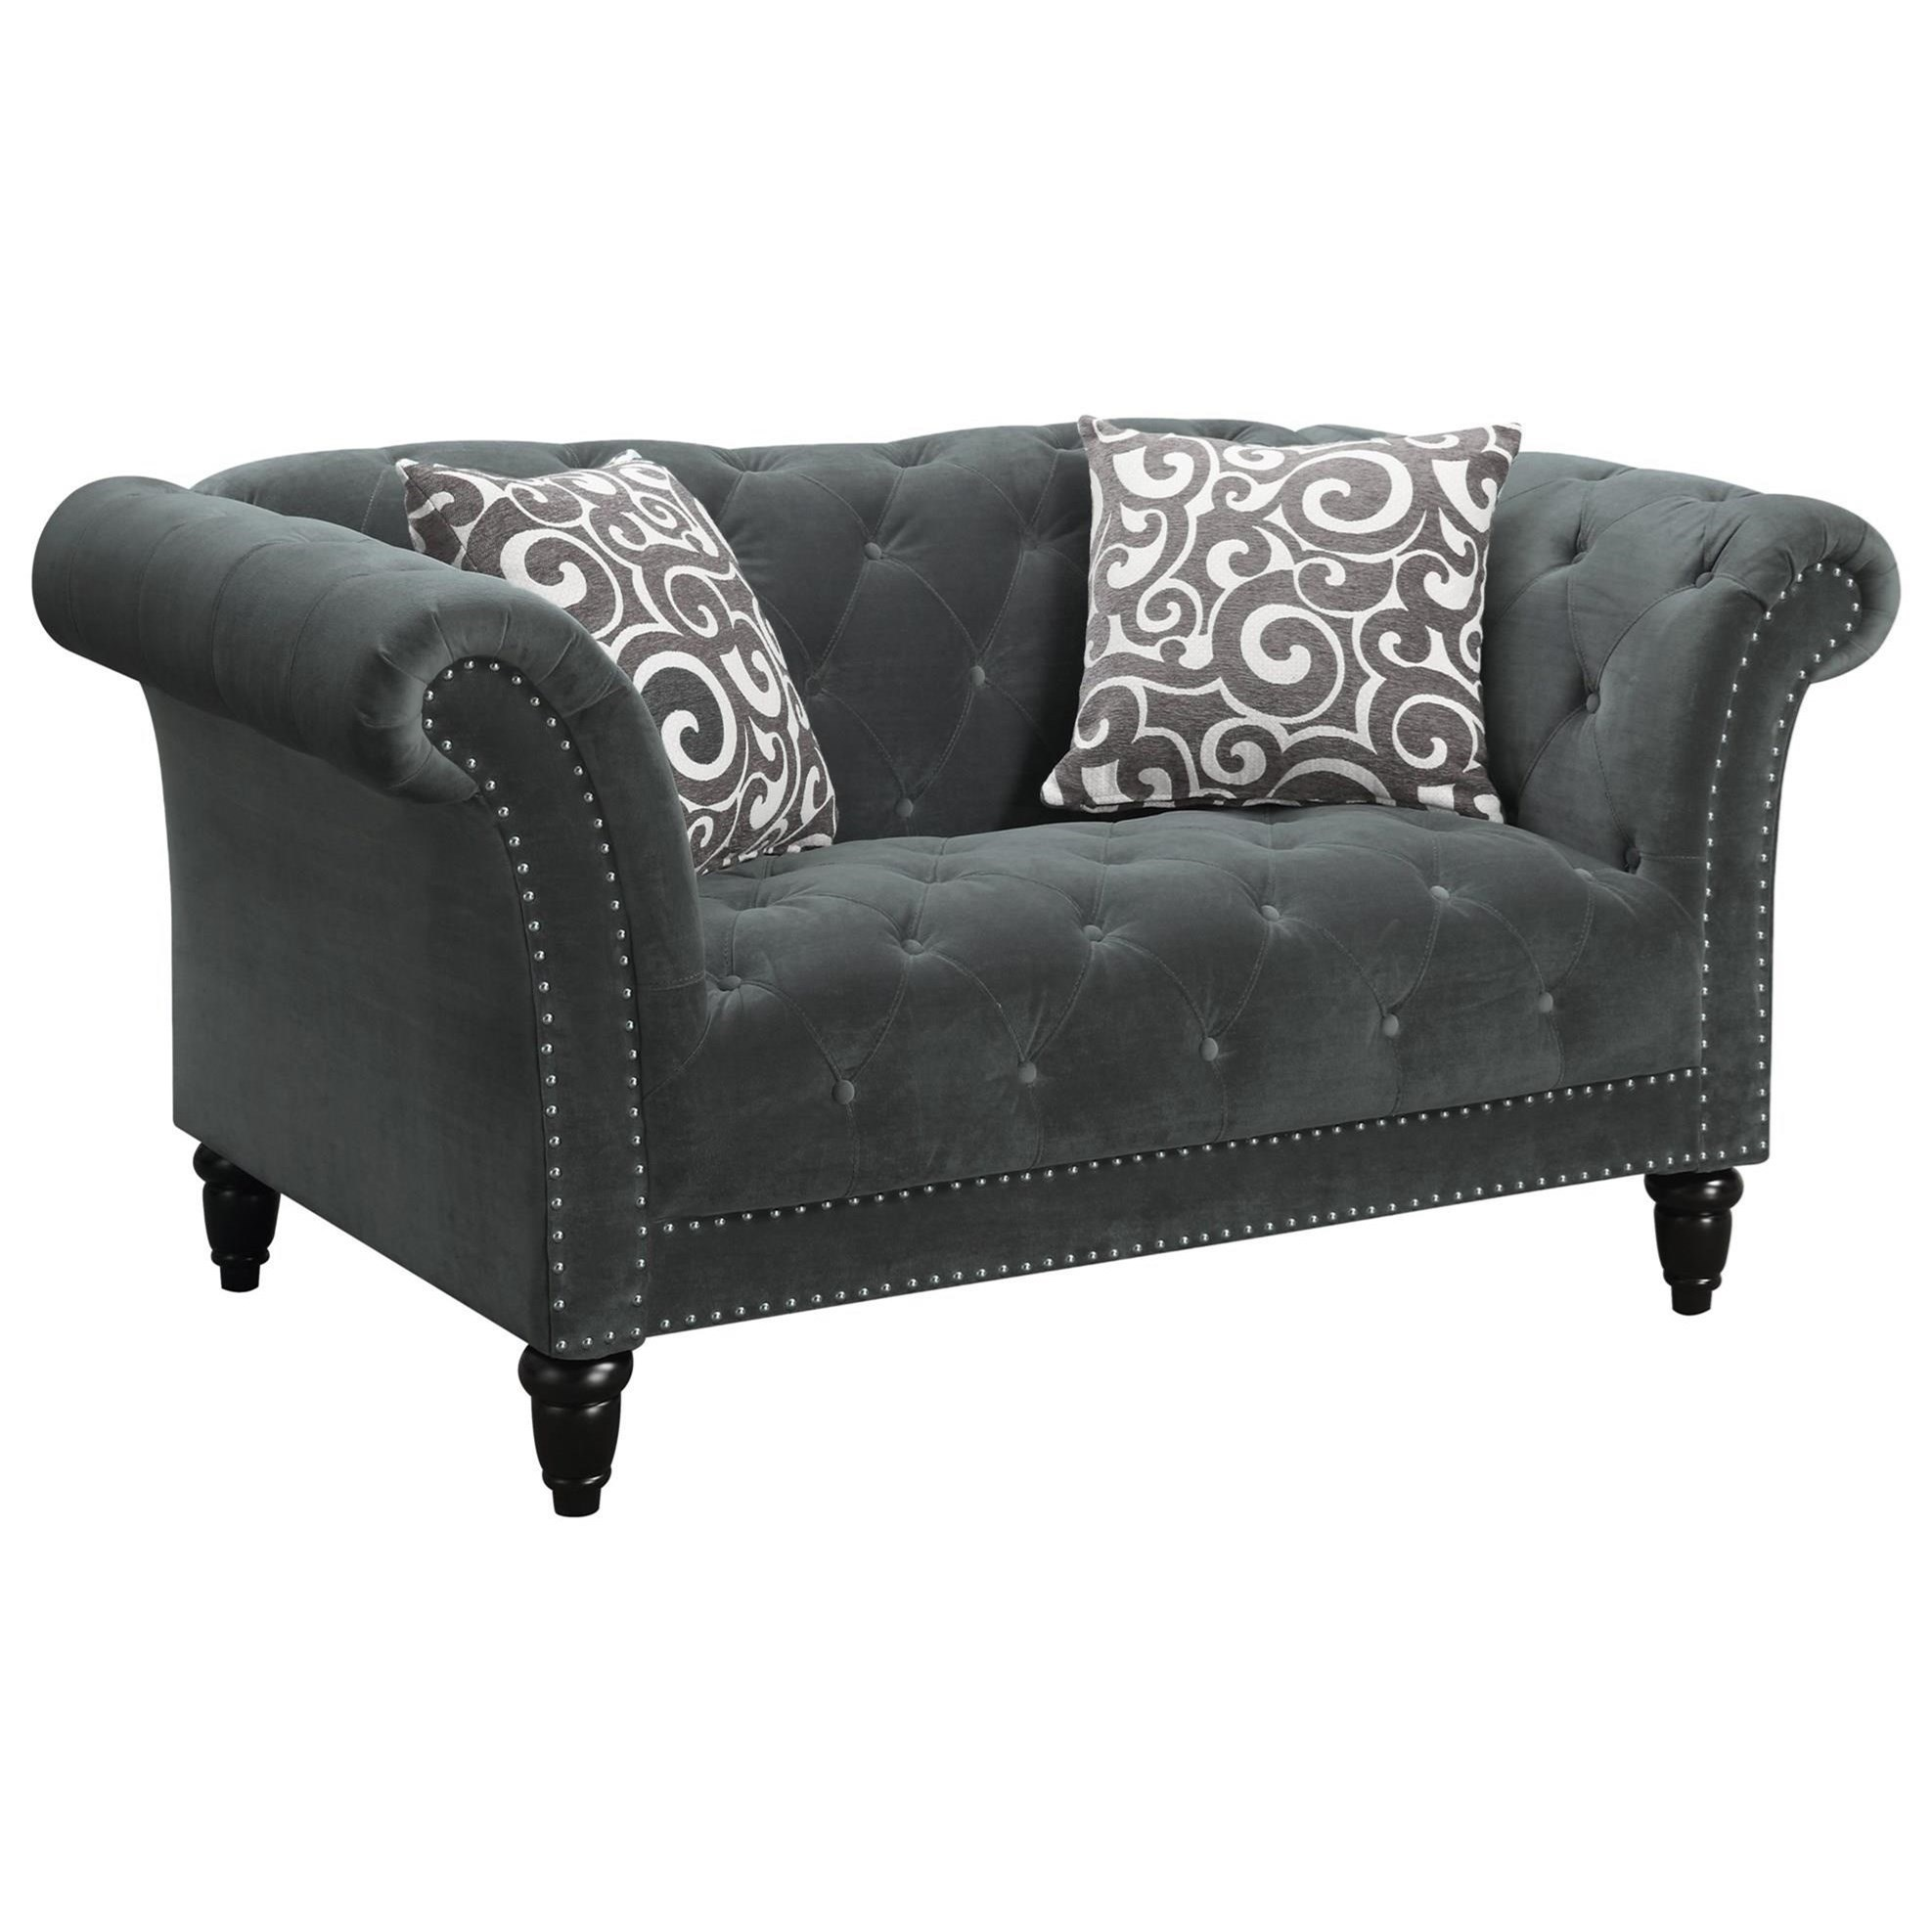 Twain Loveseat by Elements International at Beck's Furniture